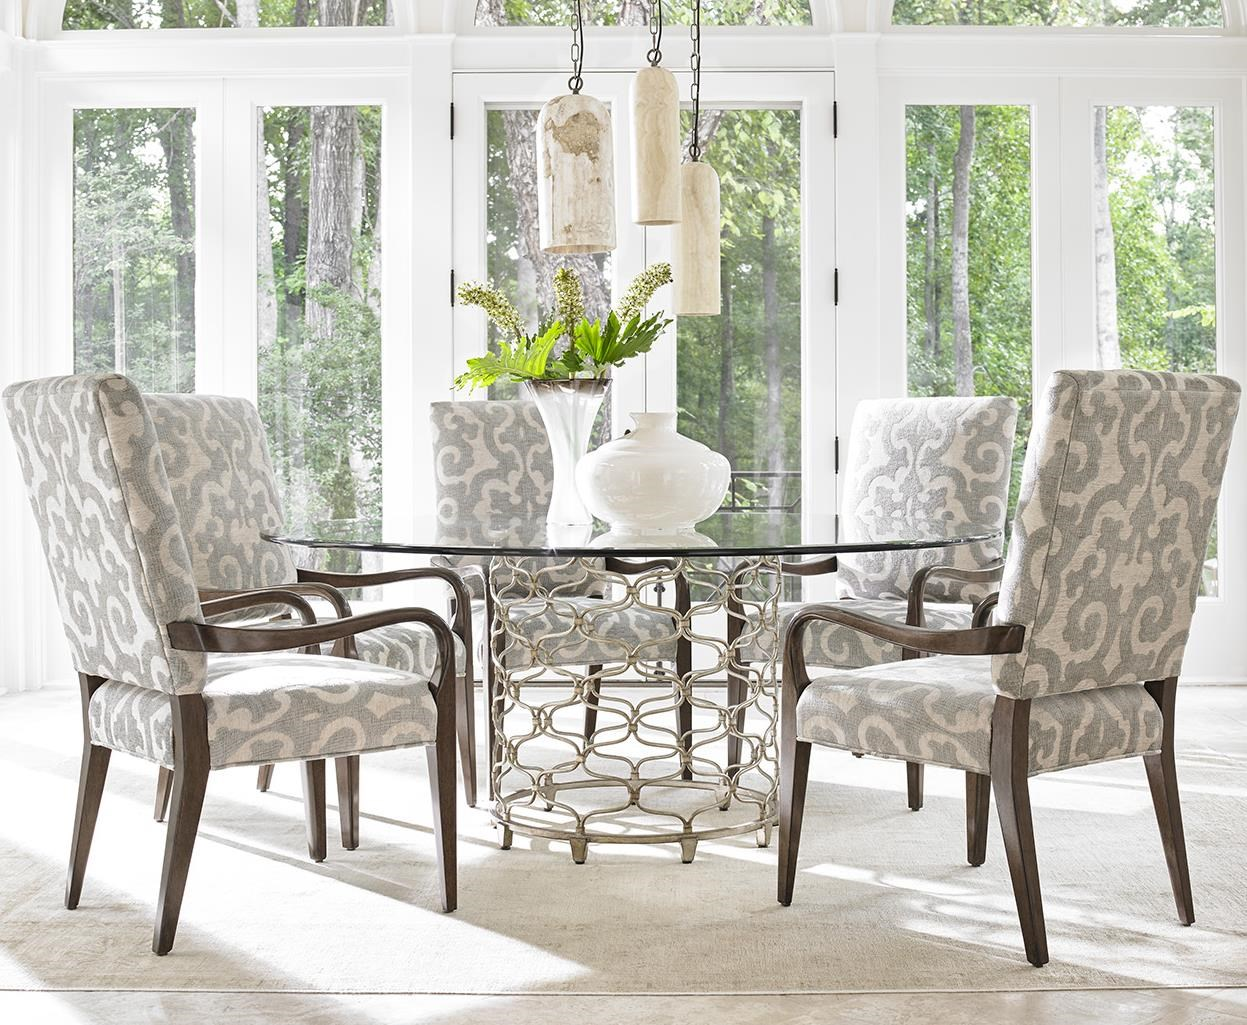 Merveilleux Lexington LAUREL CANYON Six Piece Dining Set With Bollinger Table And  Sierra Customizable Chairs